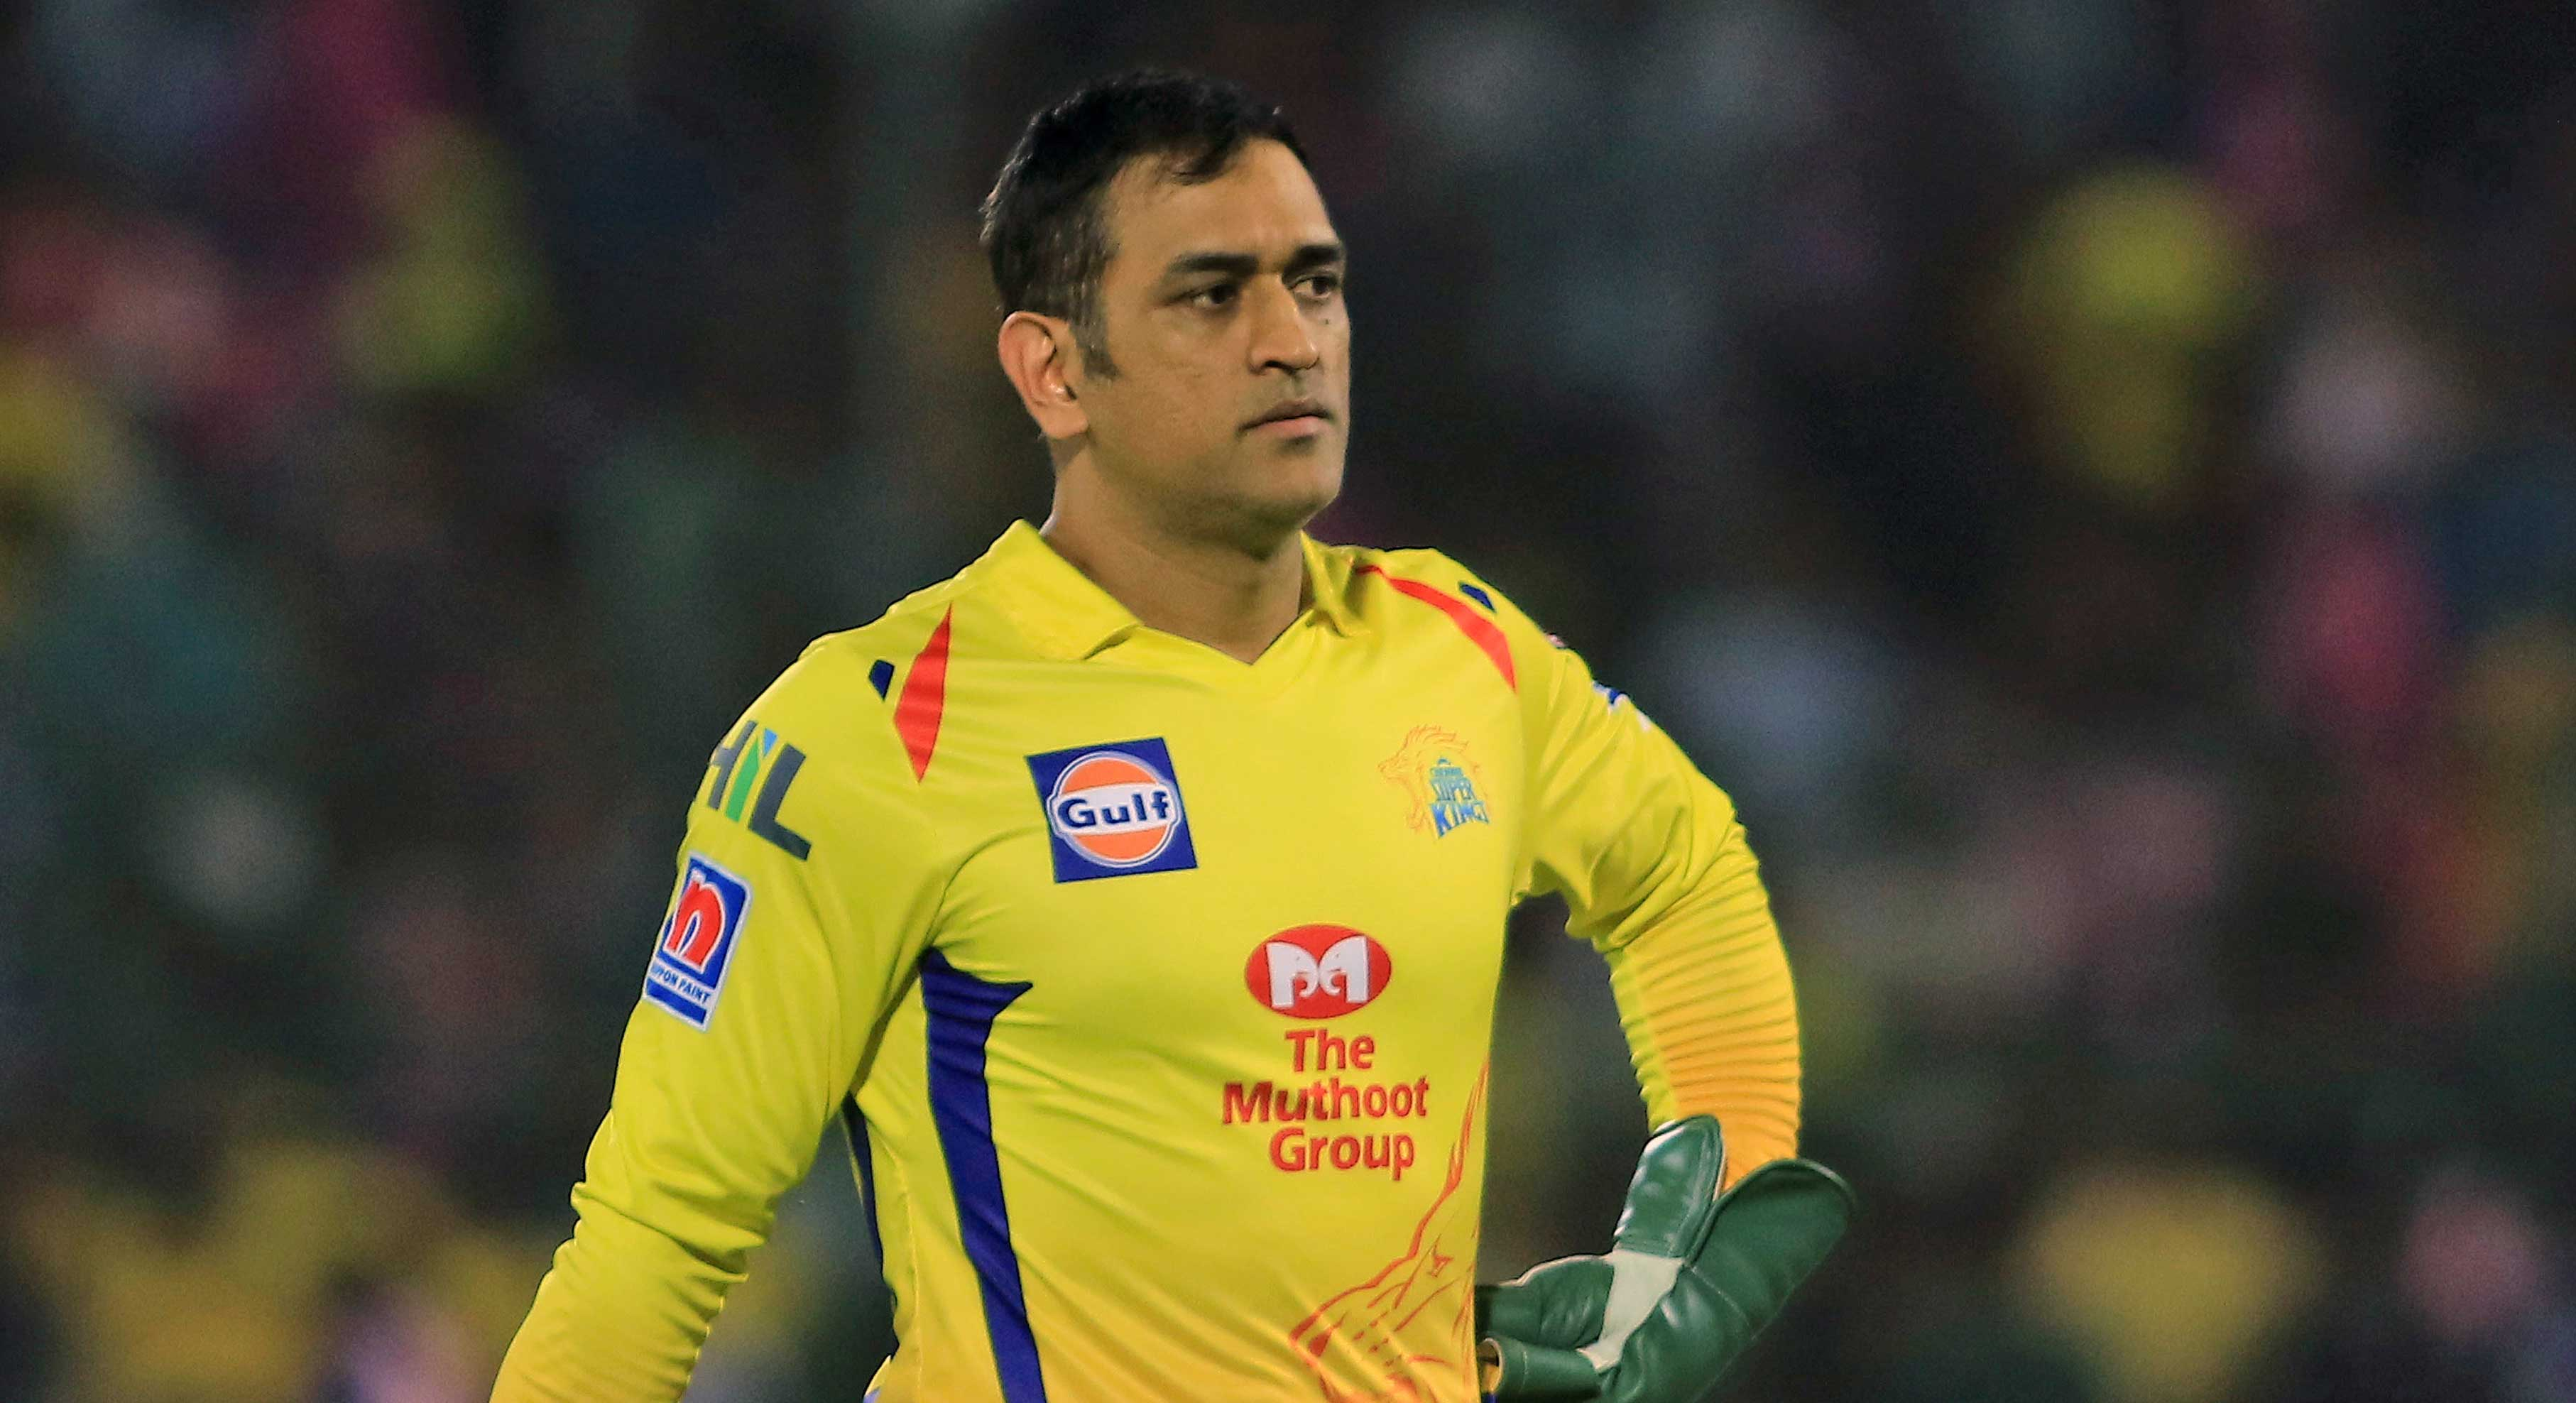 Mahendra Singh Dhoni during the IPL cricket match between Rajasthan Royals and Chennai Super Kings in Jaipur, on April 11, 2019.